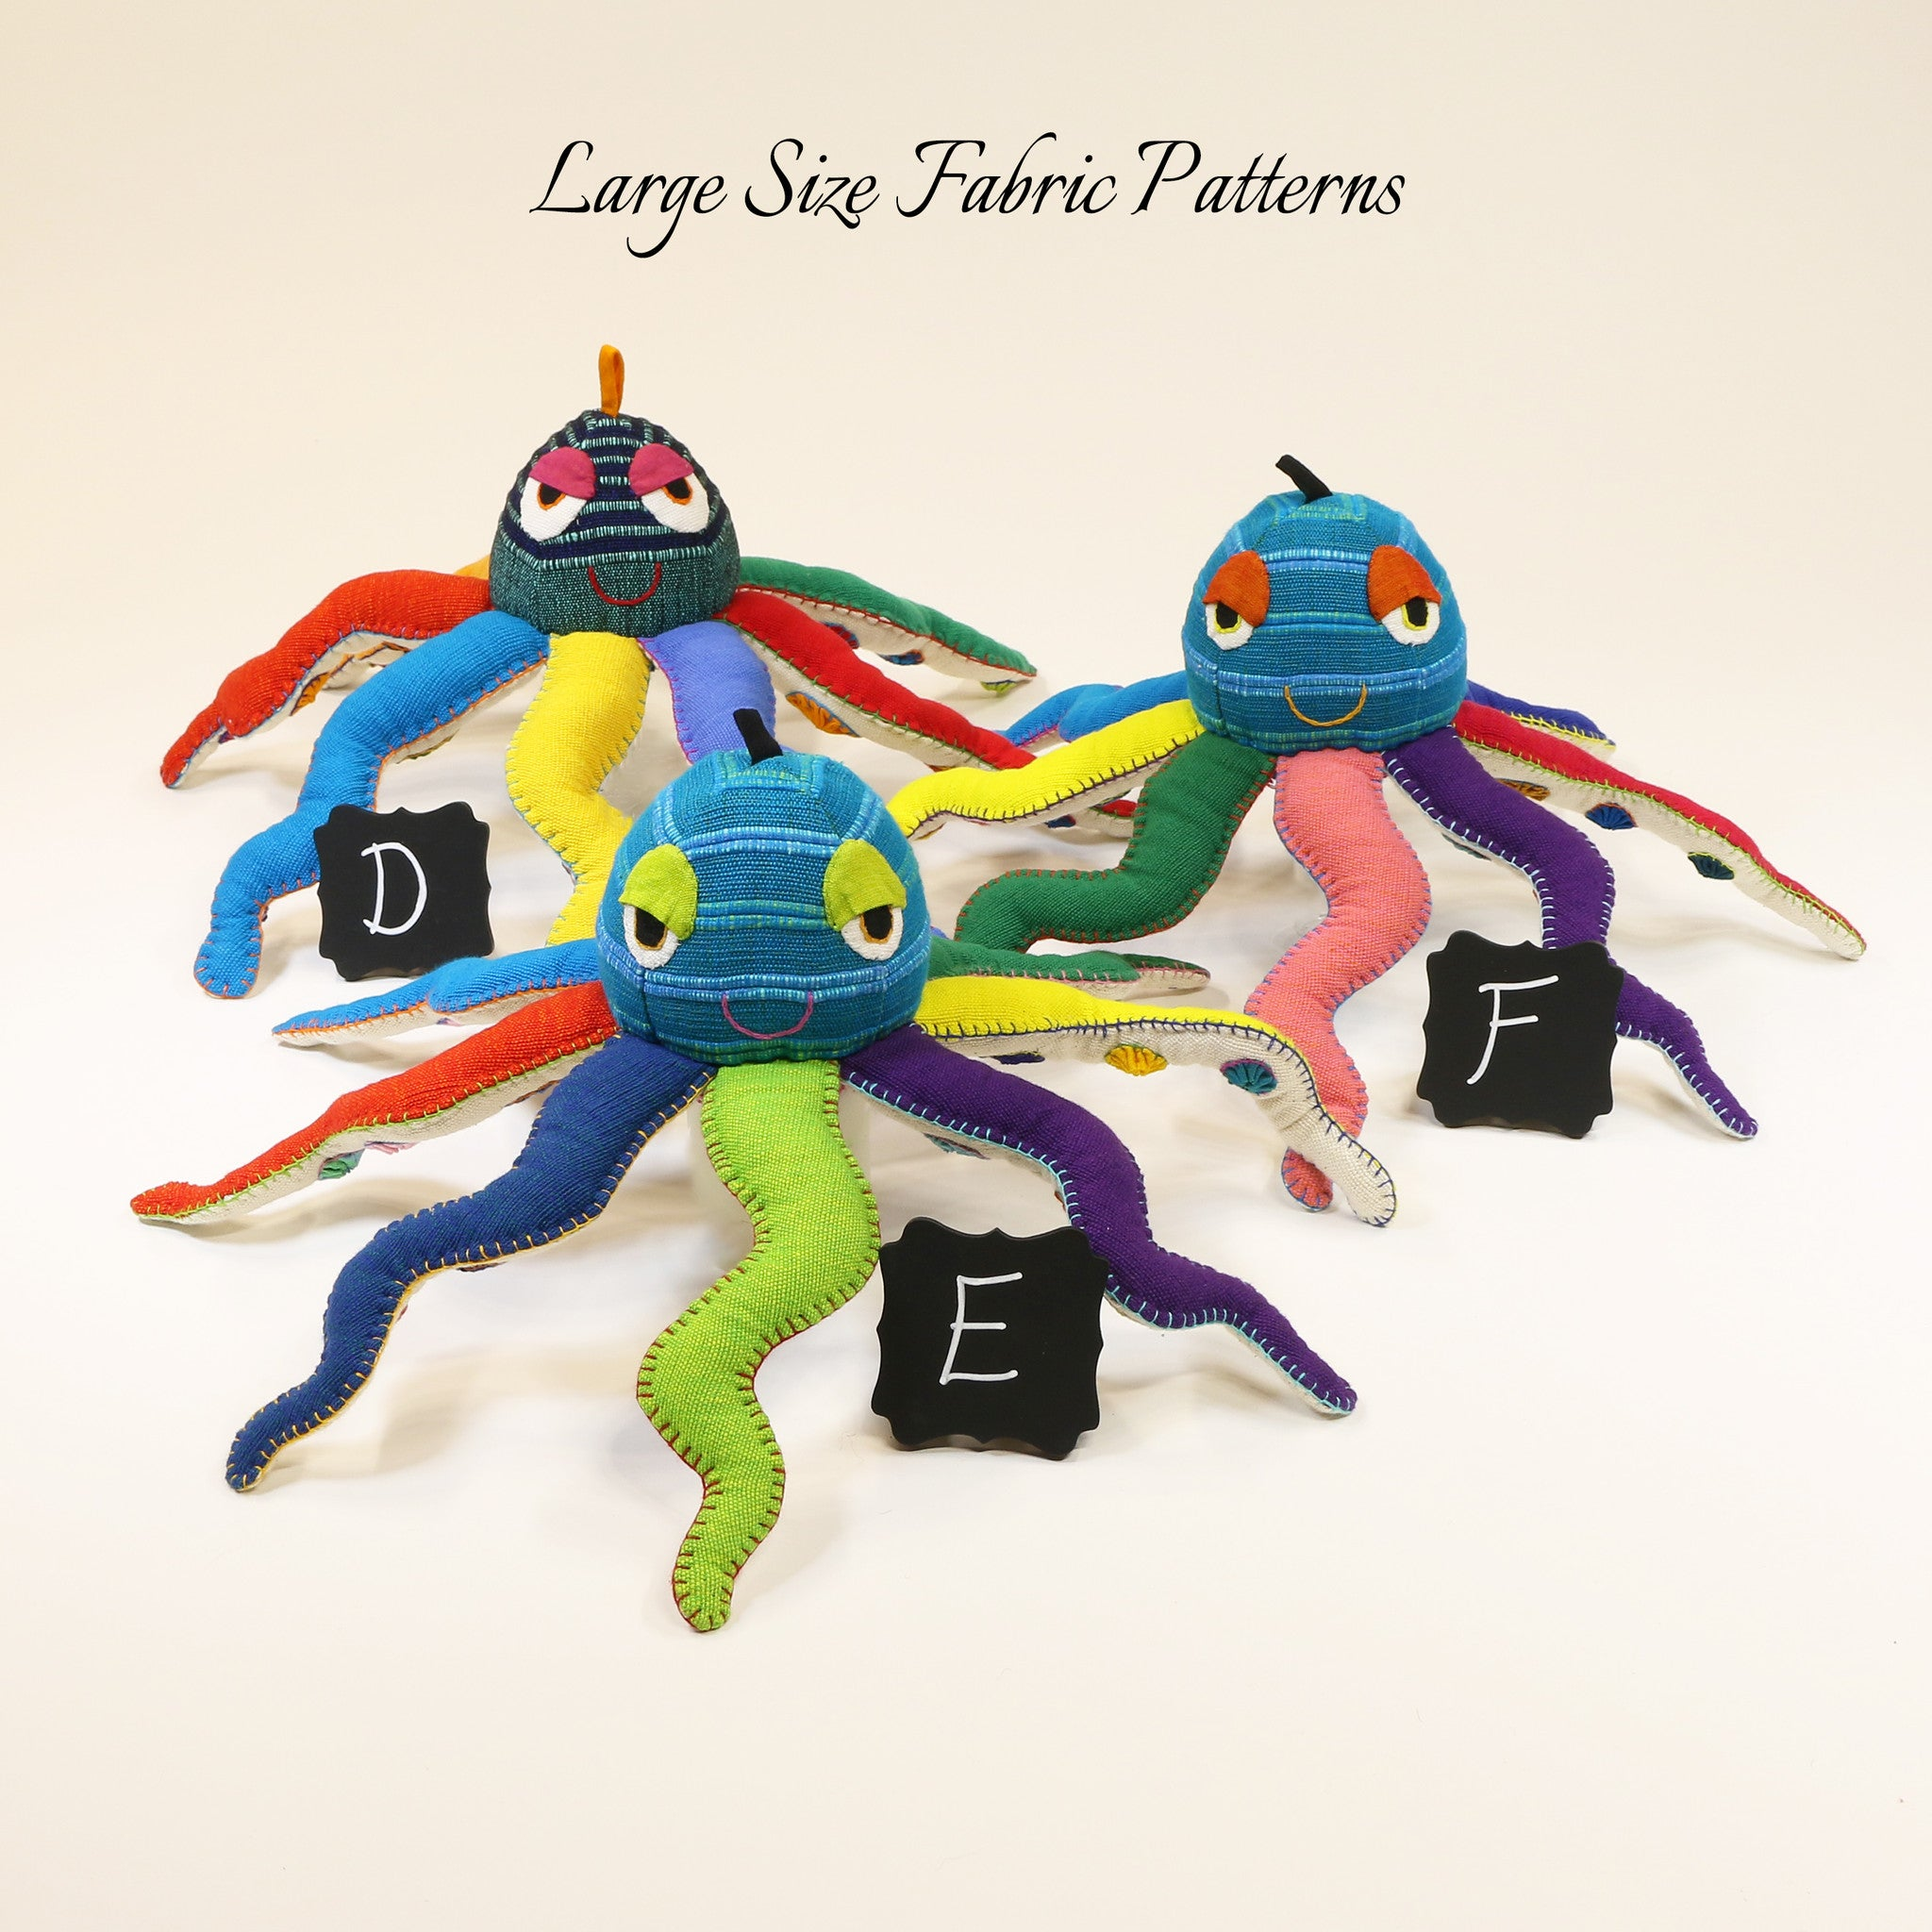 Owen, the Octopus – large size fabric patterns shown